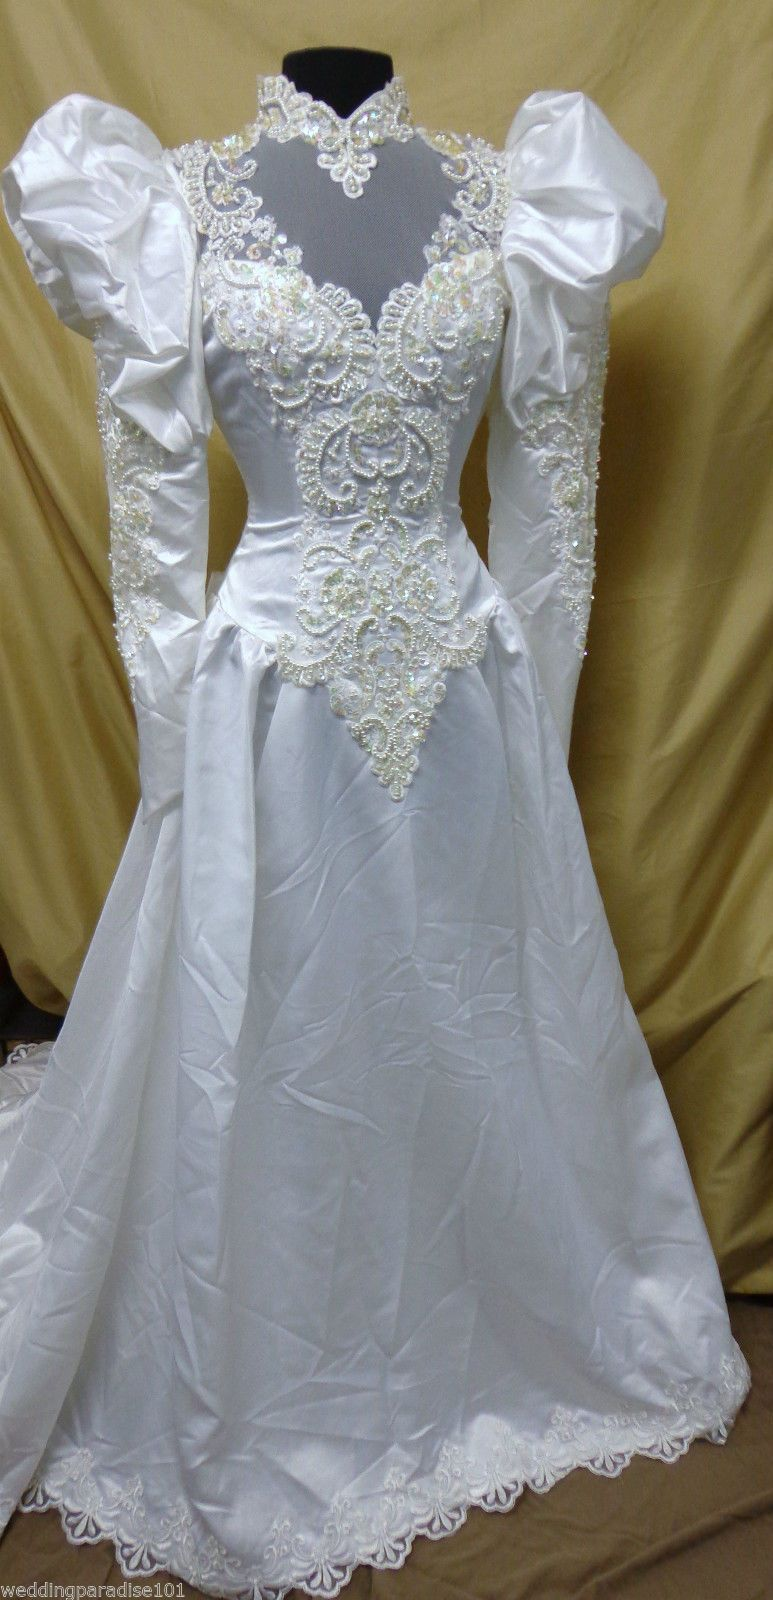 Vintage Wedding Dress Moonlight #7911 White Fits Size 2 Retail $810 ...